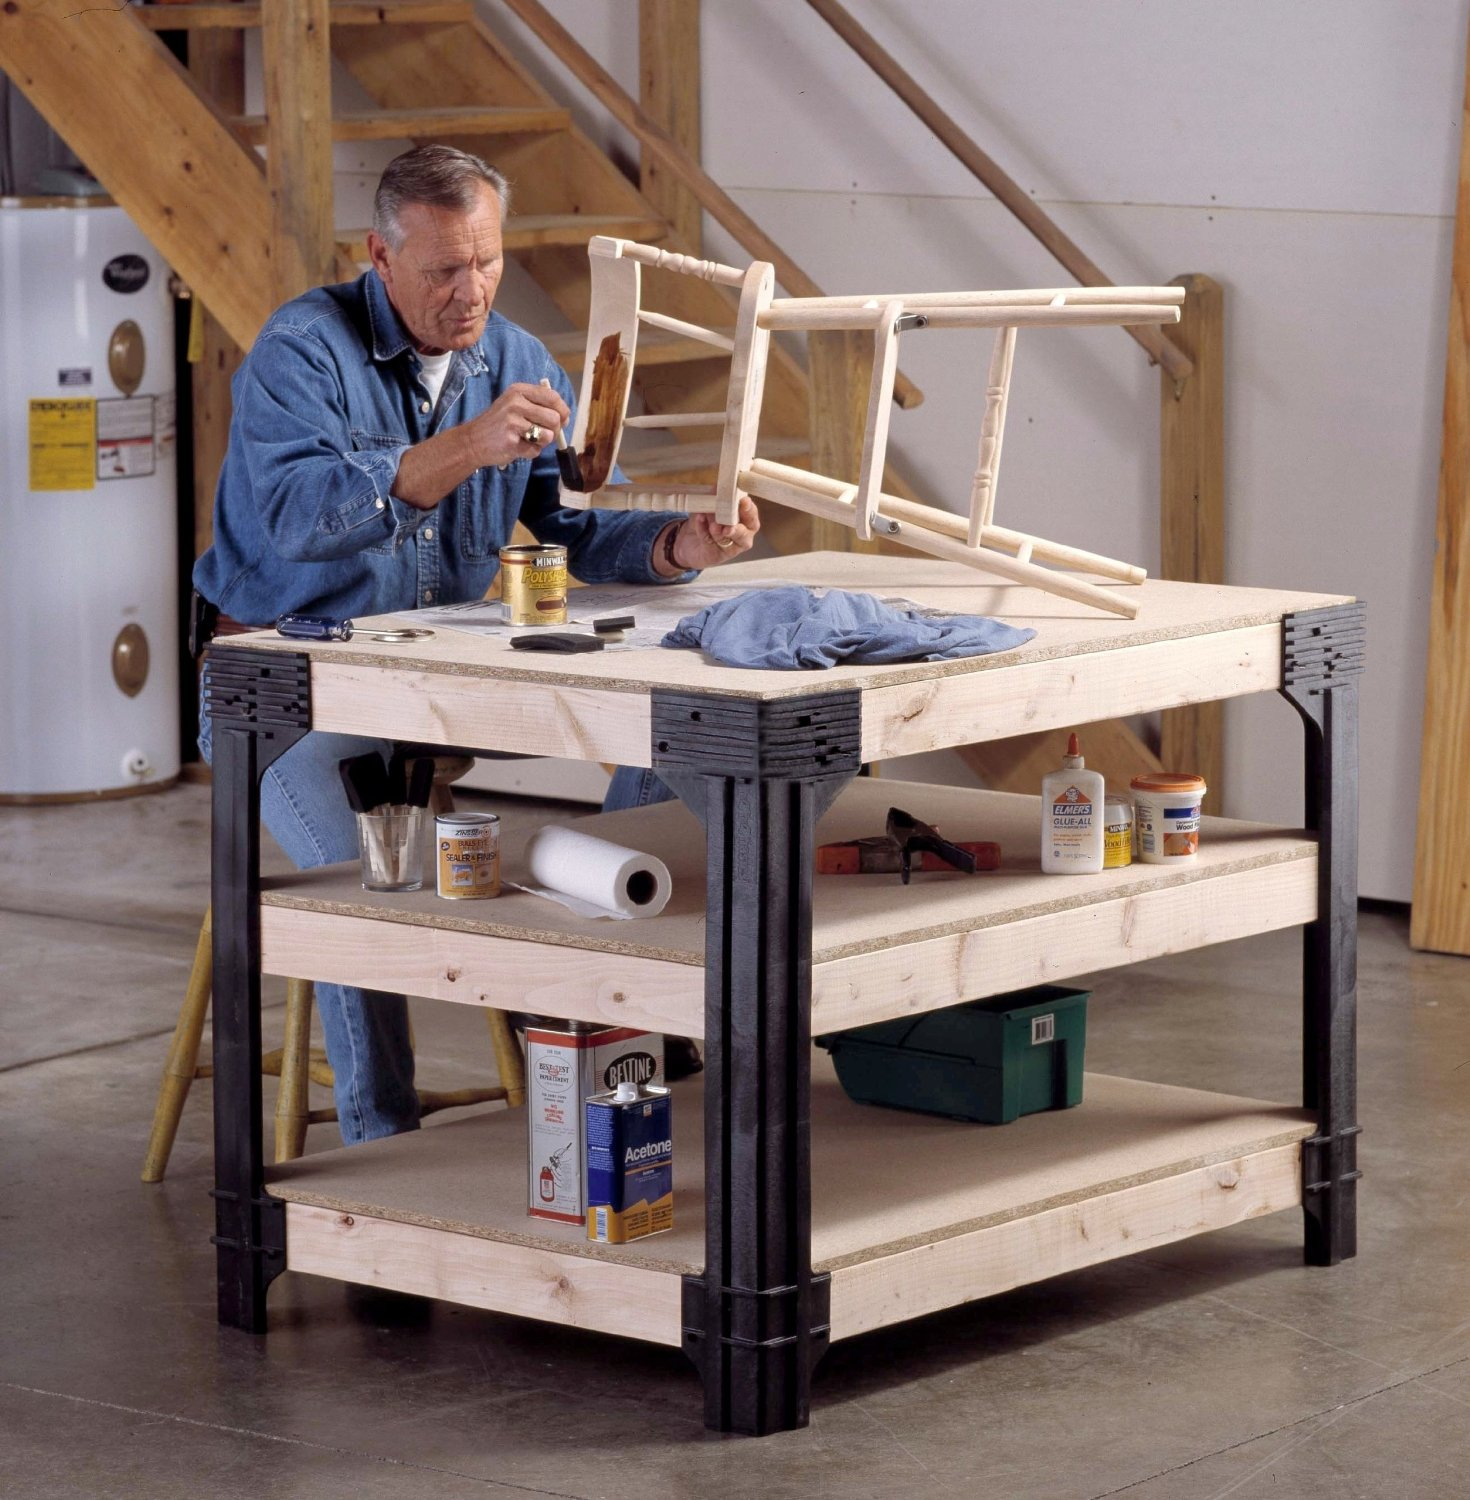 The Perfect Workbench for Your Crafts